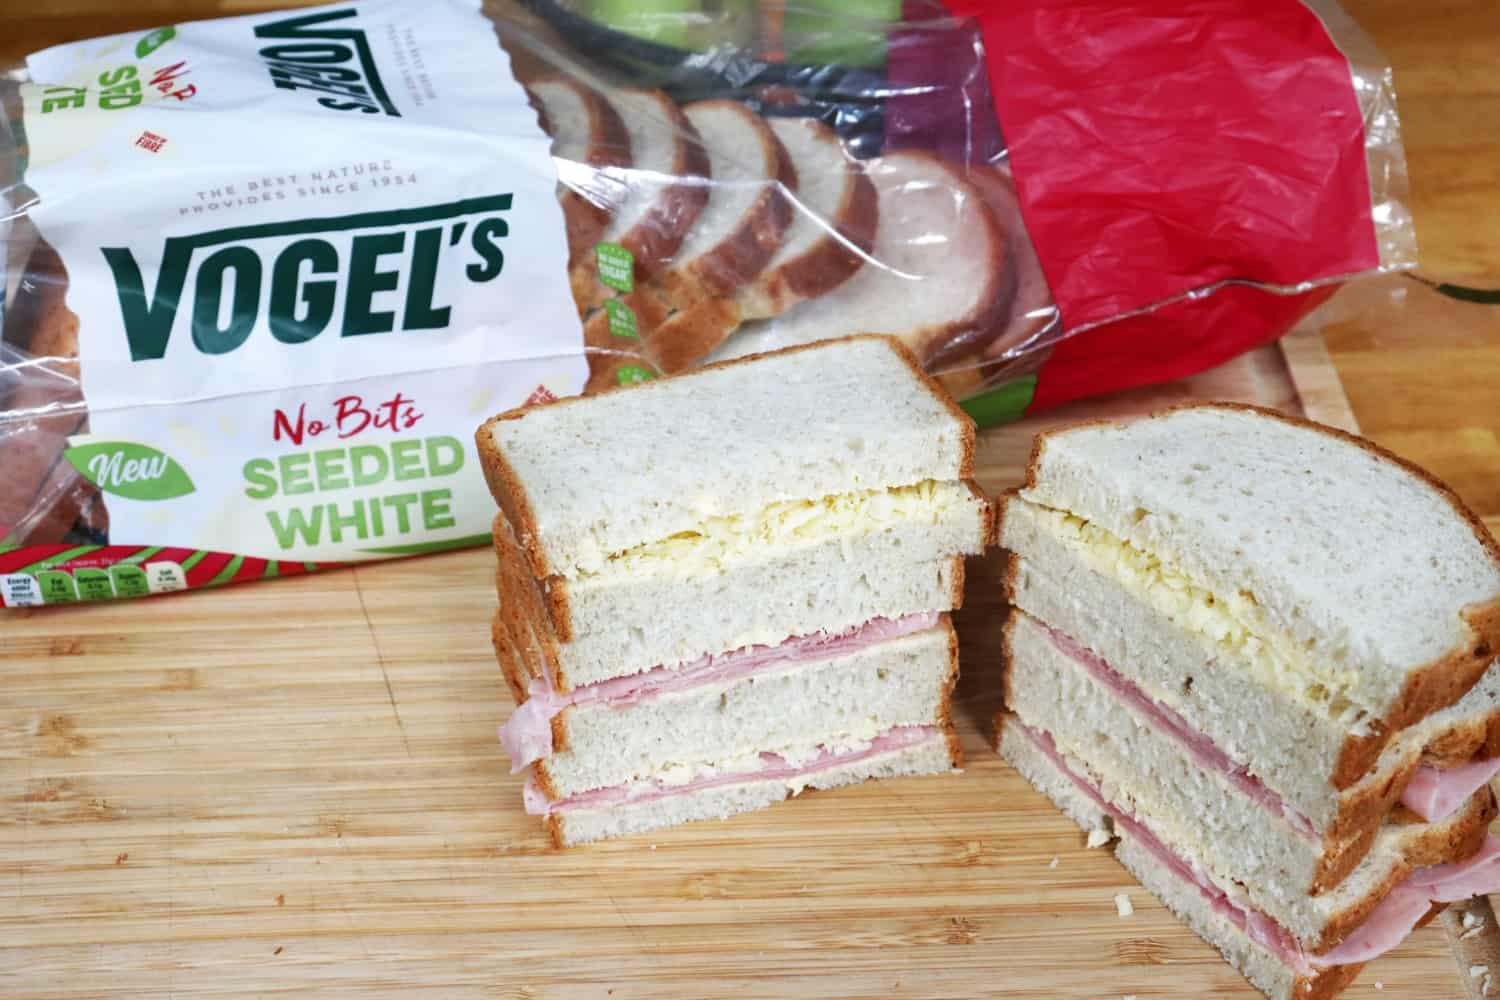 Packed Lunches Whatever the Weather with Vogel's